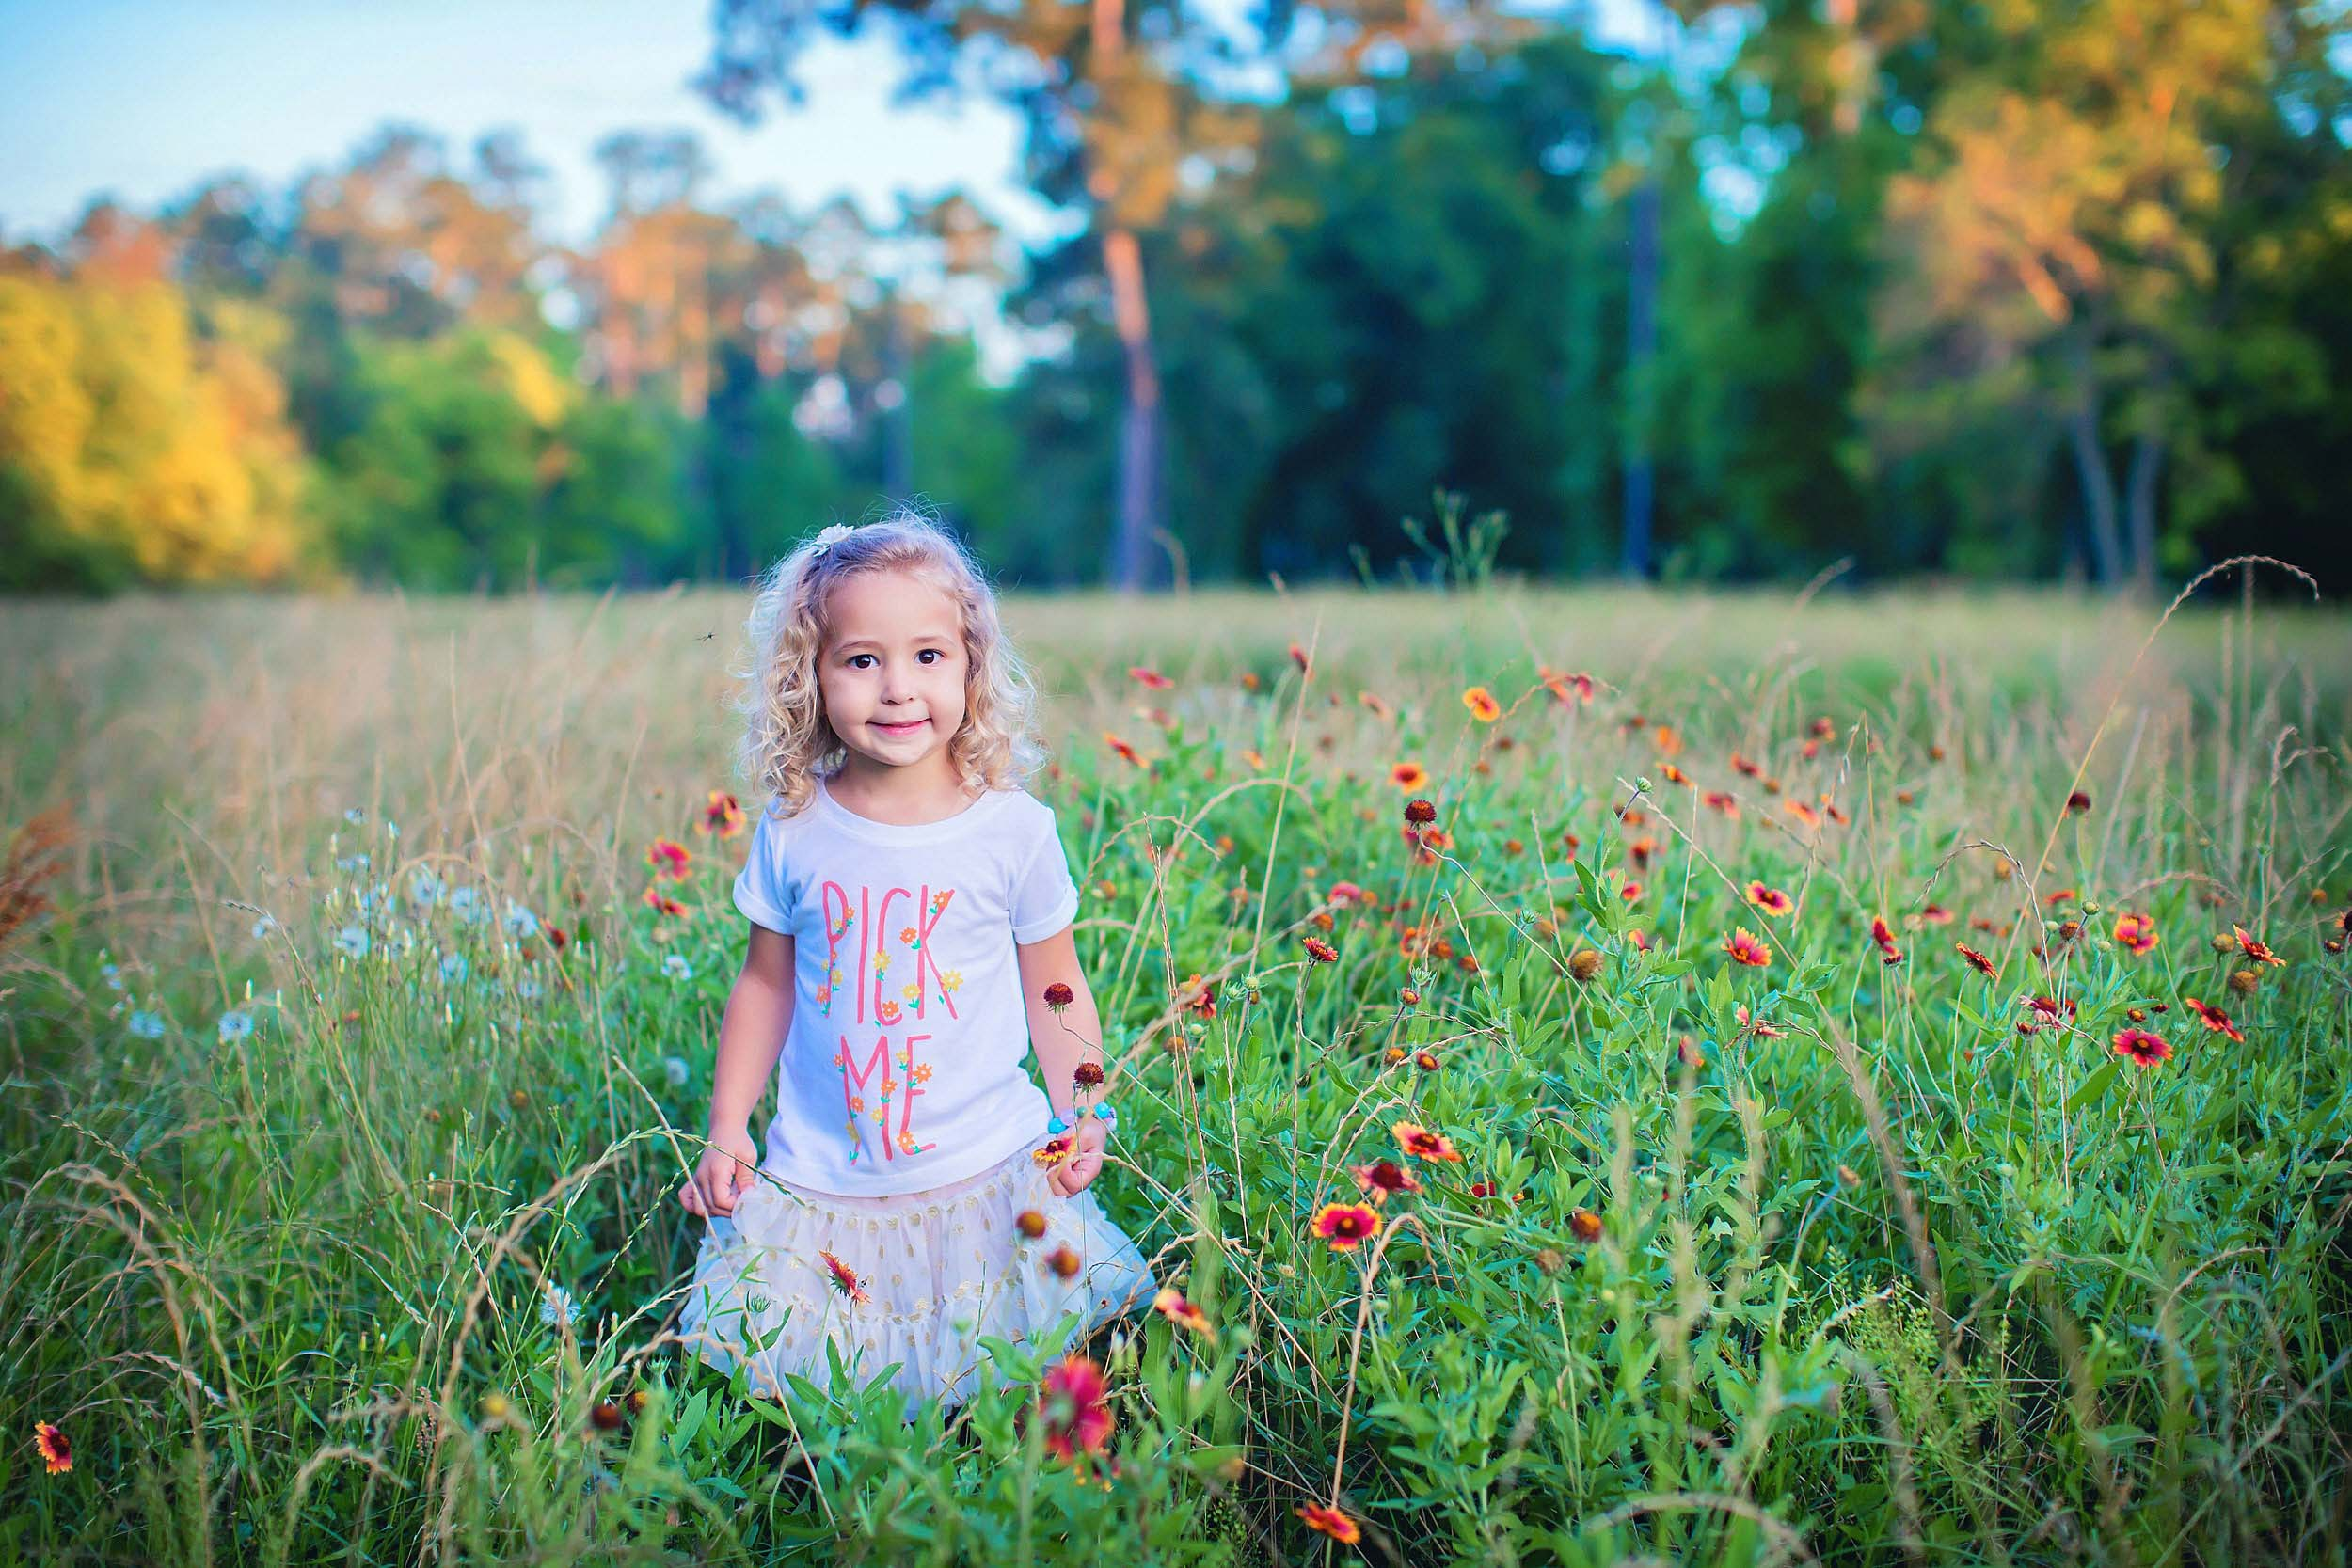 Portrait of lIttle girl standing in wildflowers in The Woodlands, Texas